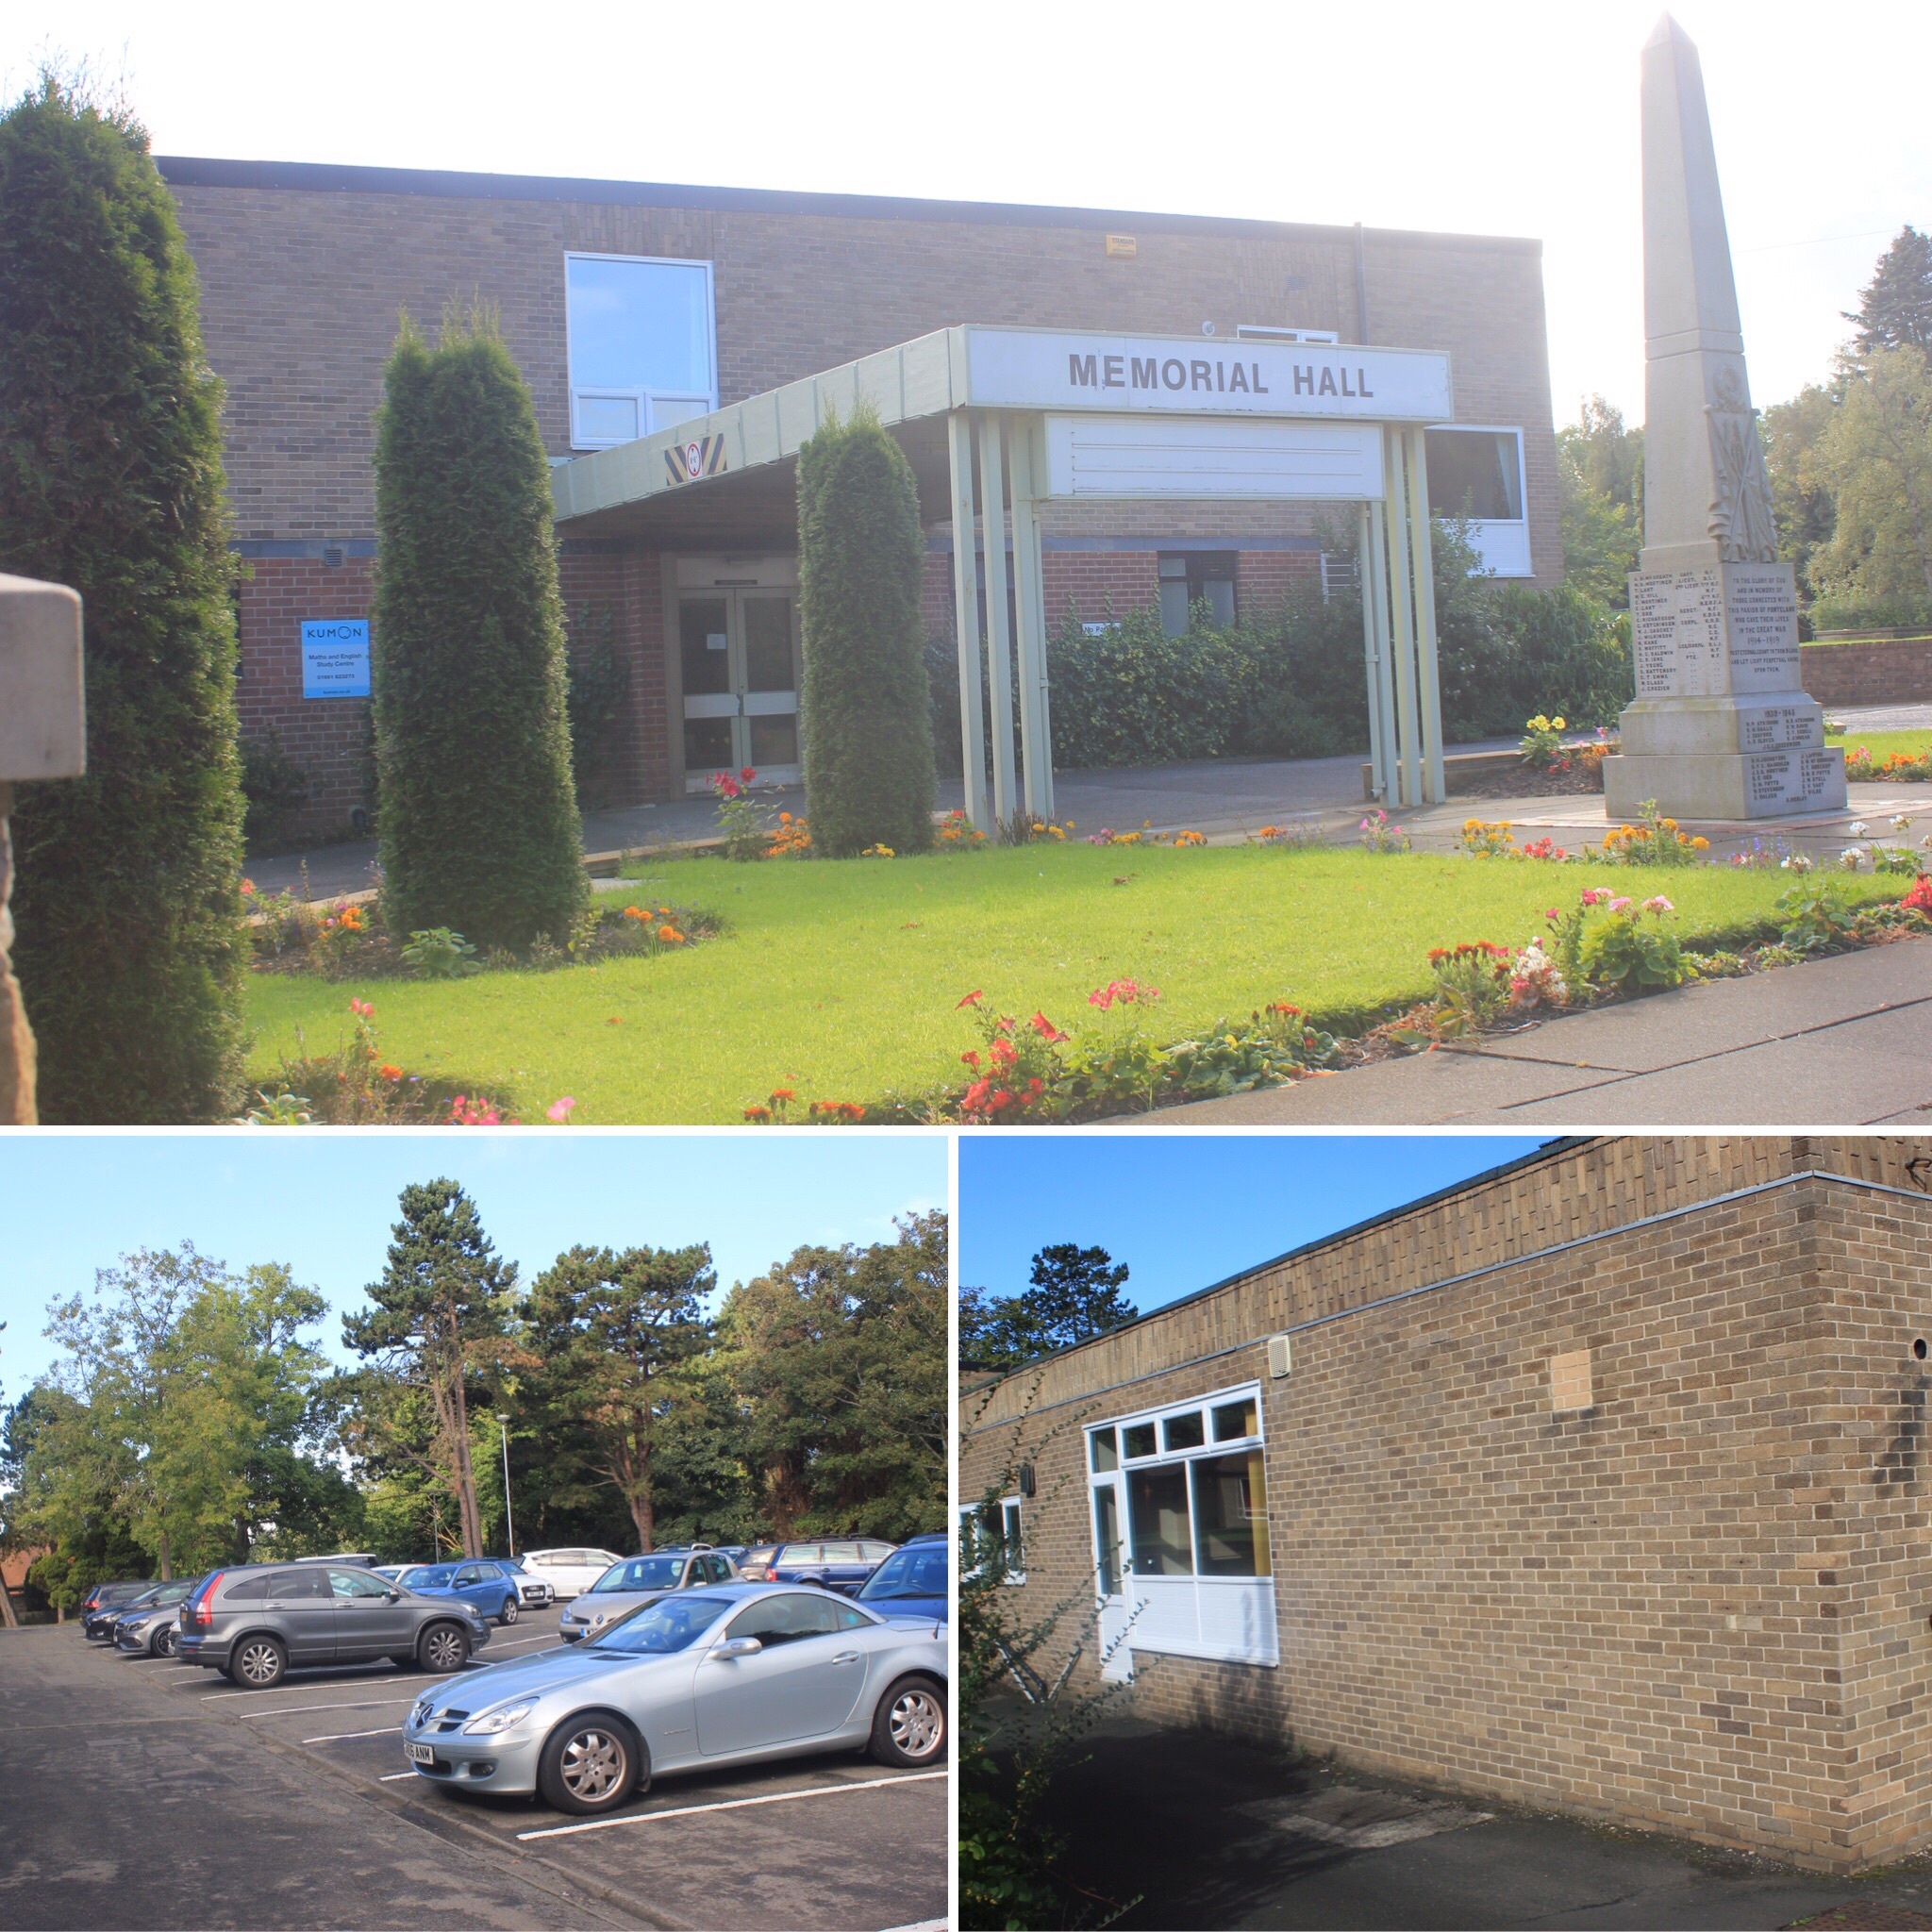 Cristal yoga ponteland ponteland memorial hall parking